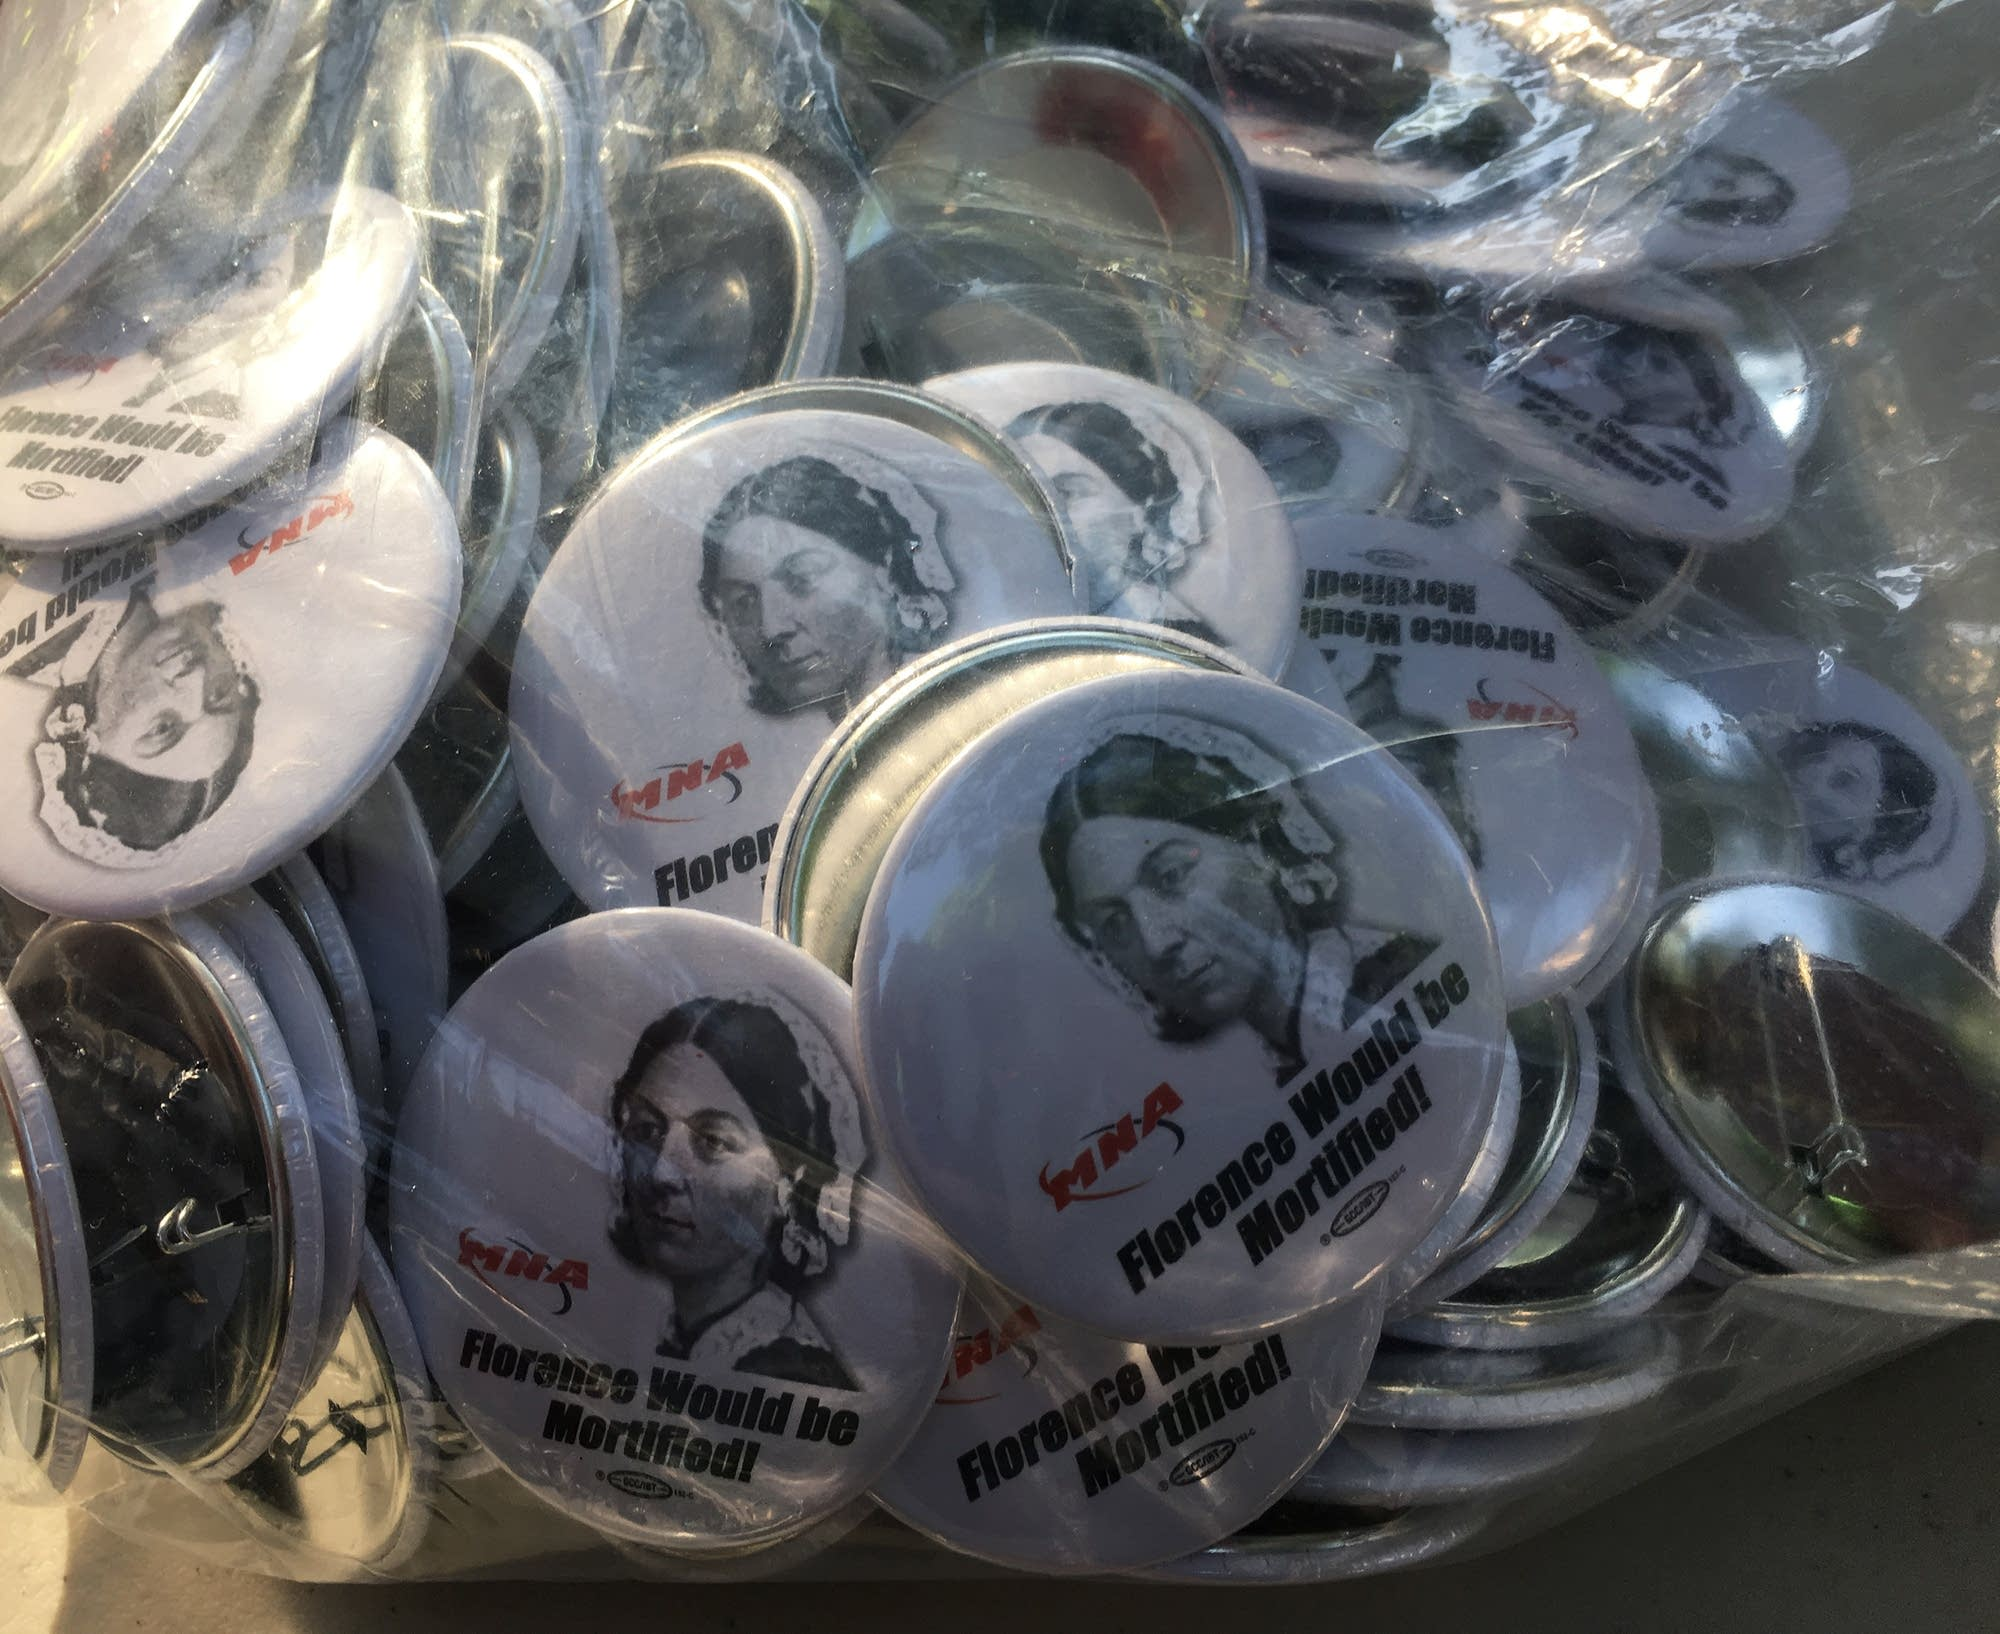 Buttons at the staging ground for the strike